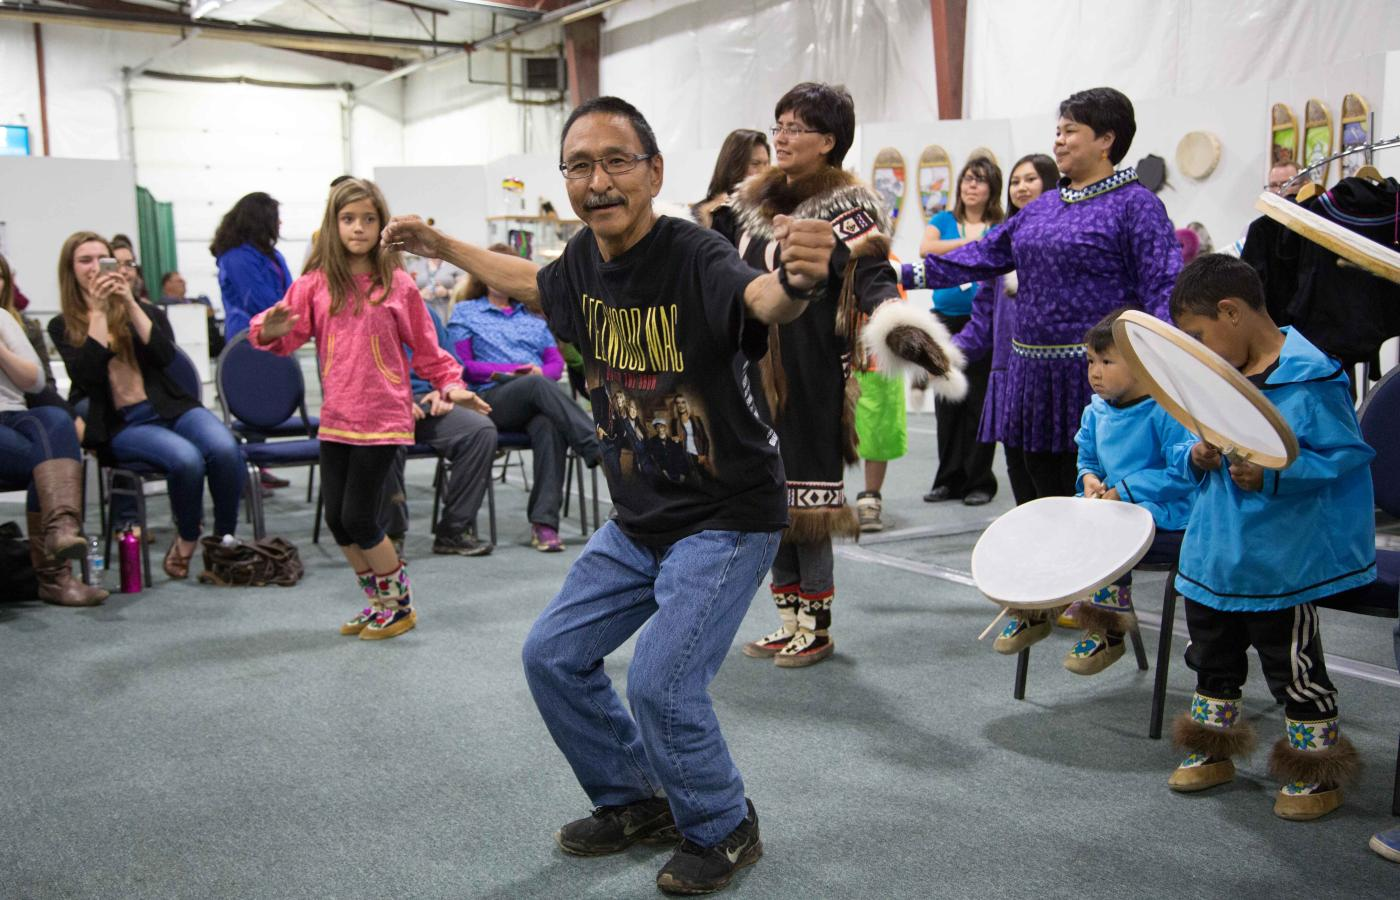 Culture on display at the Great Northern Arts Festival in Inuvik